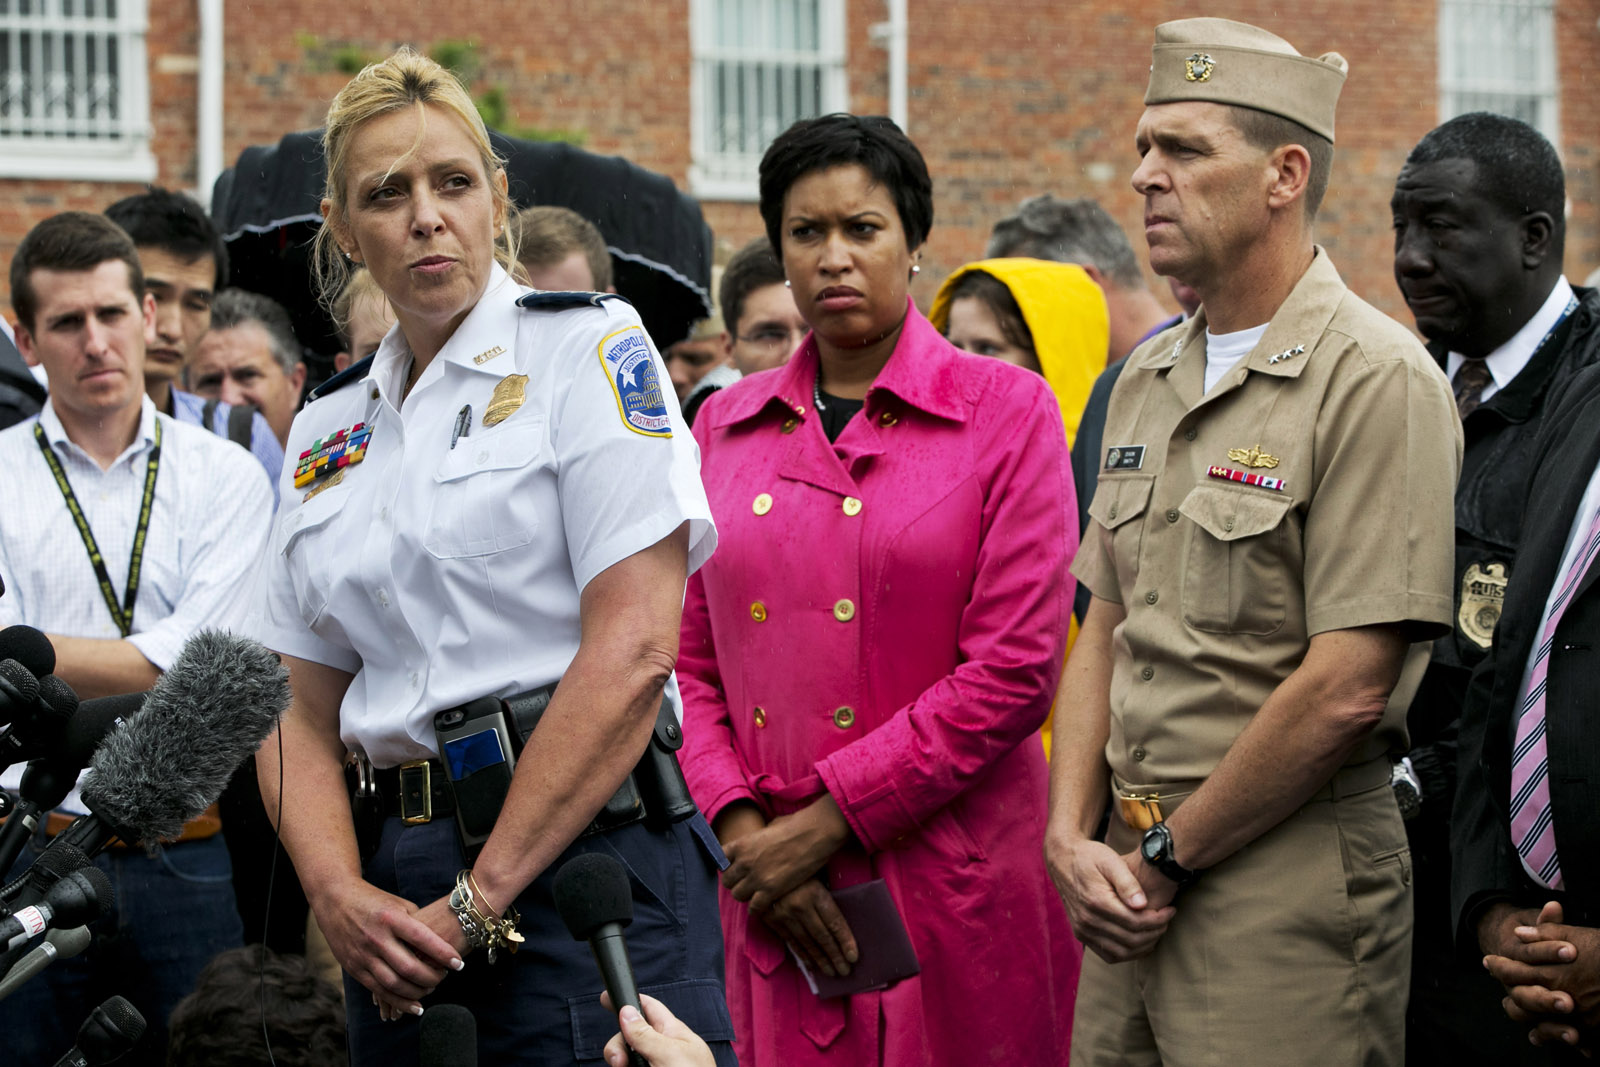 D.C. Police Chief: Training, lessons learned in 2013 Navy Yard shooting paid off